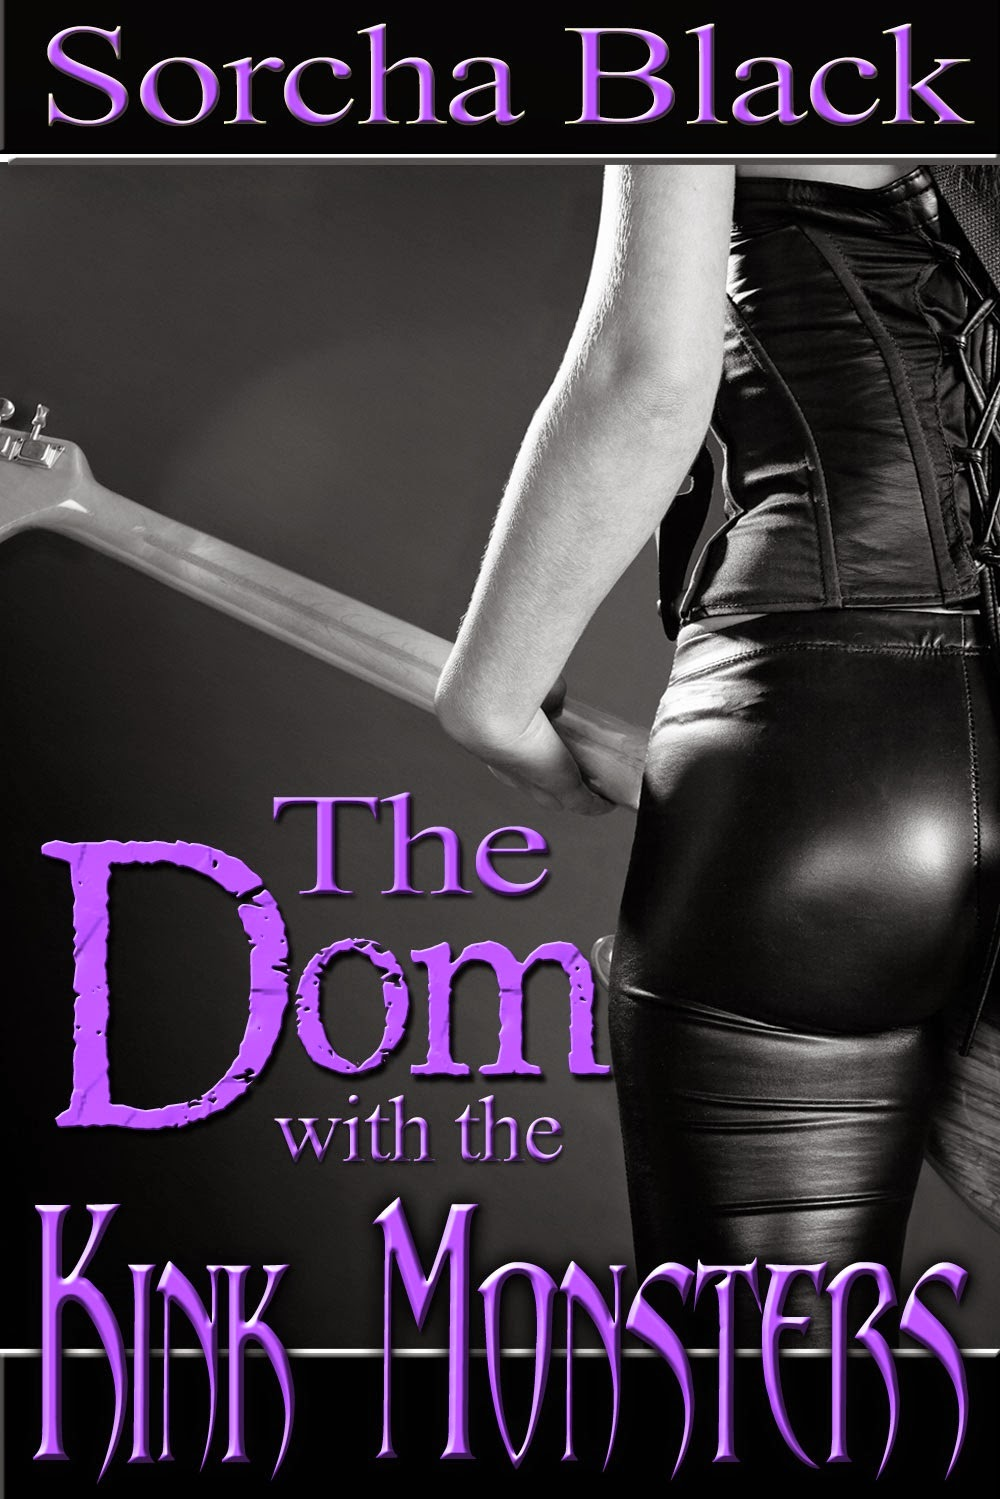 http://www.amazon.com/Dom-Kink-Monsters-Badass-Brats-ebook/dp/B00JUENUBI/ref=sr_1_1?s=digital-text&ie=UTF8&qid=1398140424&sr=1-1&keywords=the+dom+with+the+kink+monsters